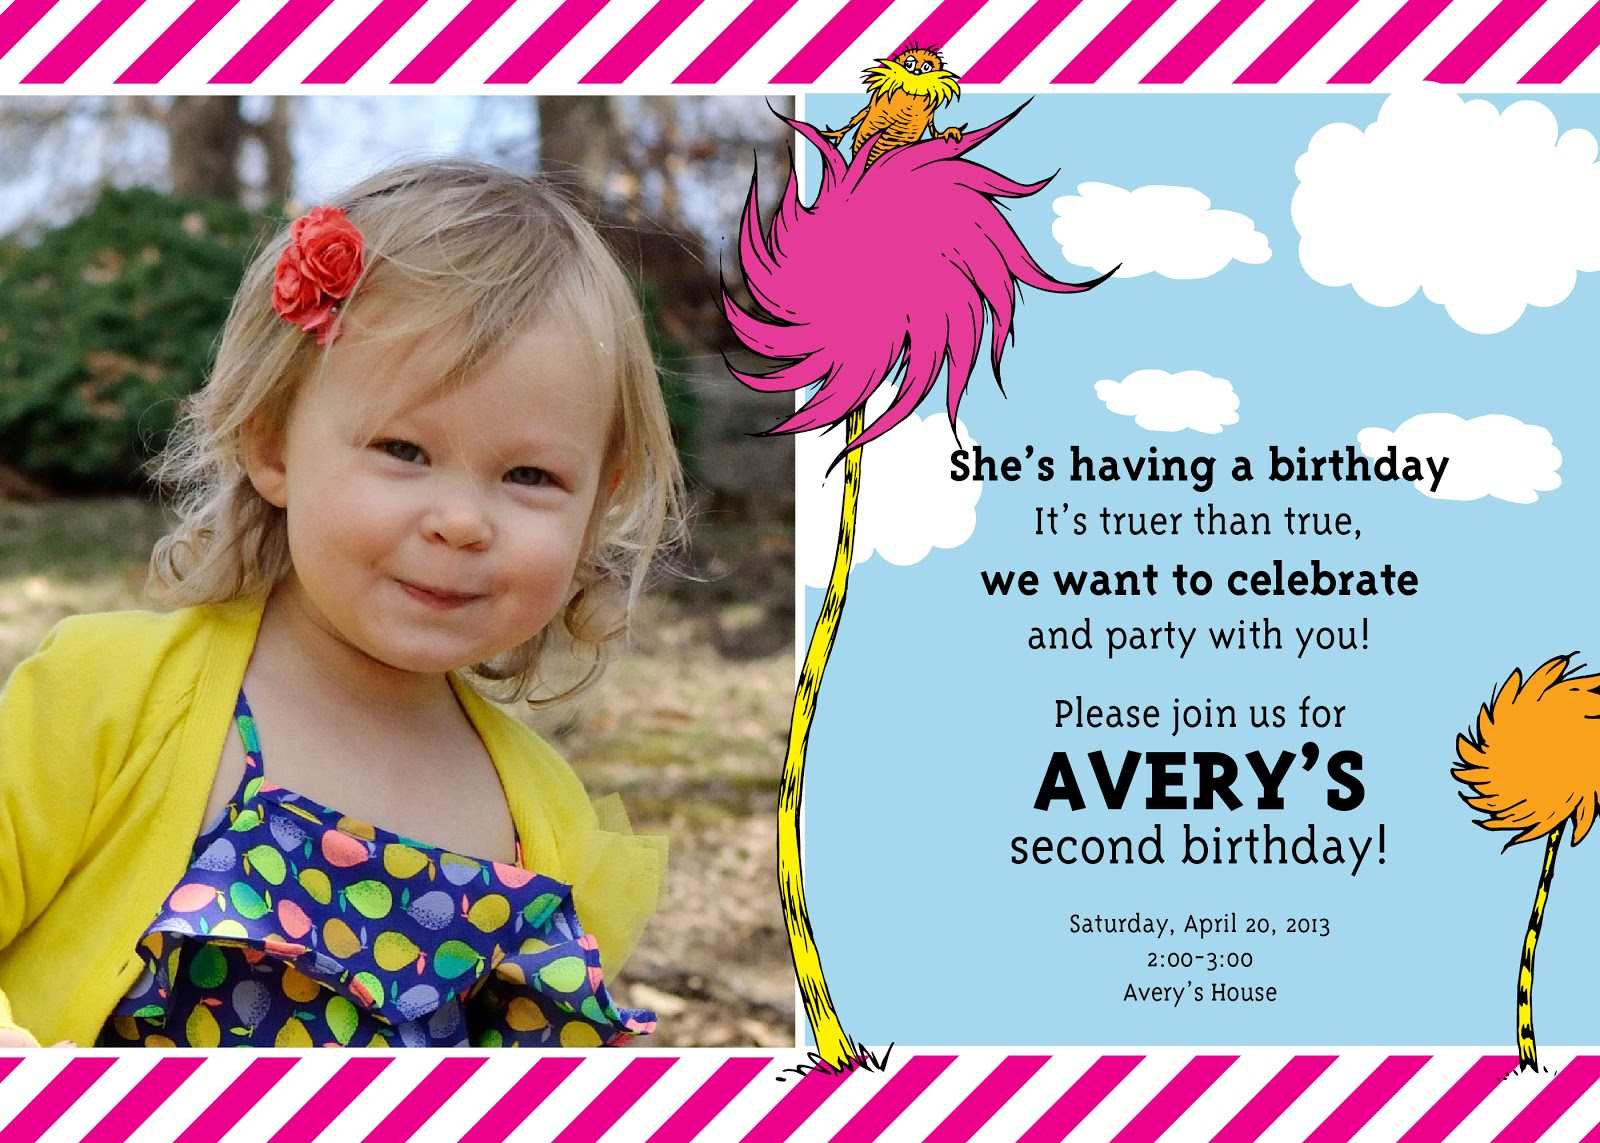 Awesome 2 year old birthday invitation sayings ideas invitation excellent two year old birthday invitation wording photos filmwisefo Gallery